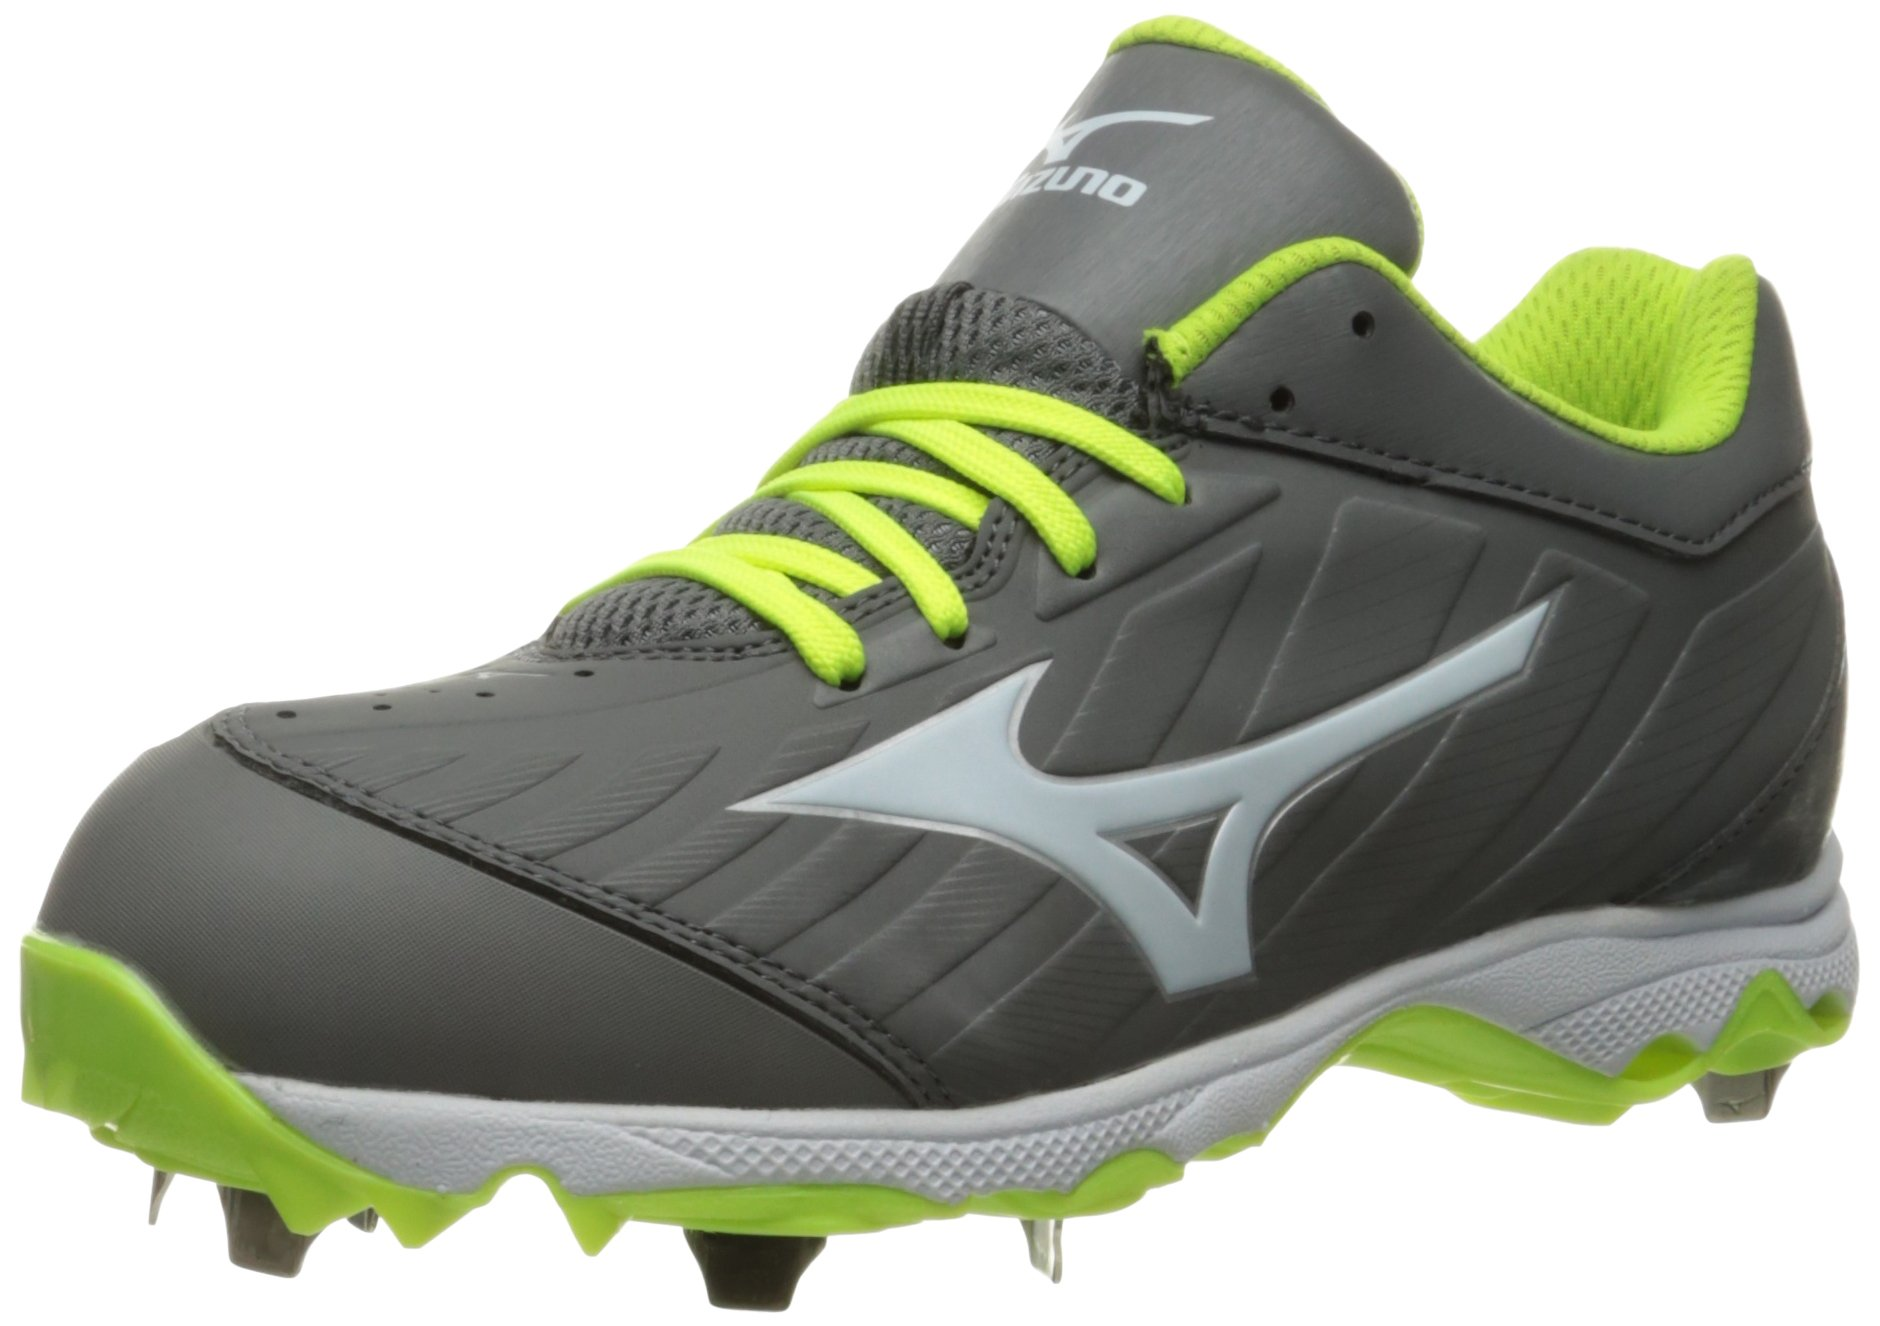 Mizuno Women's 9-Spike Advanced Sweep 3 Softball Shoe, Grey/White, 7 D US by Mizuno